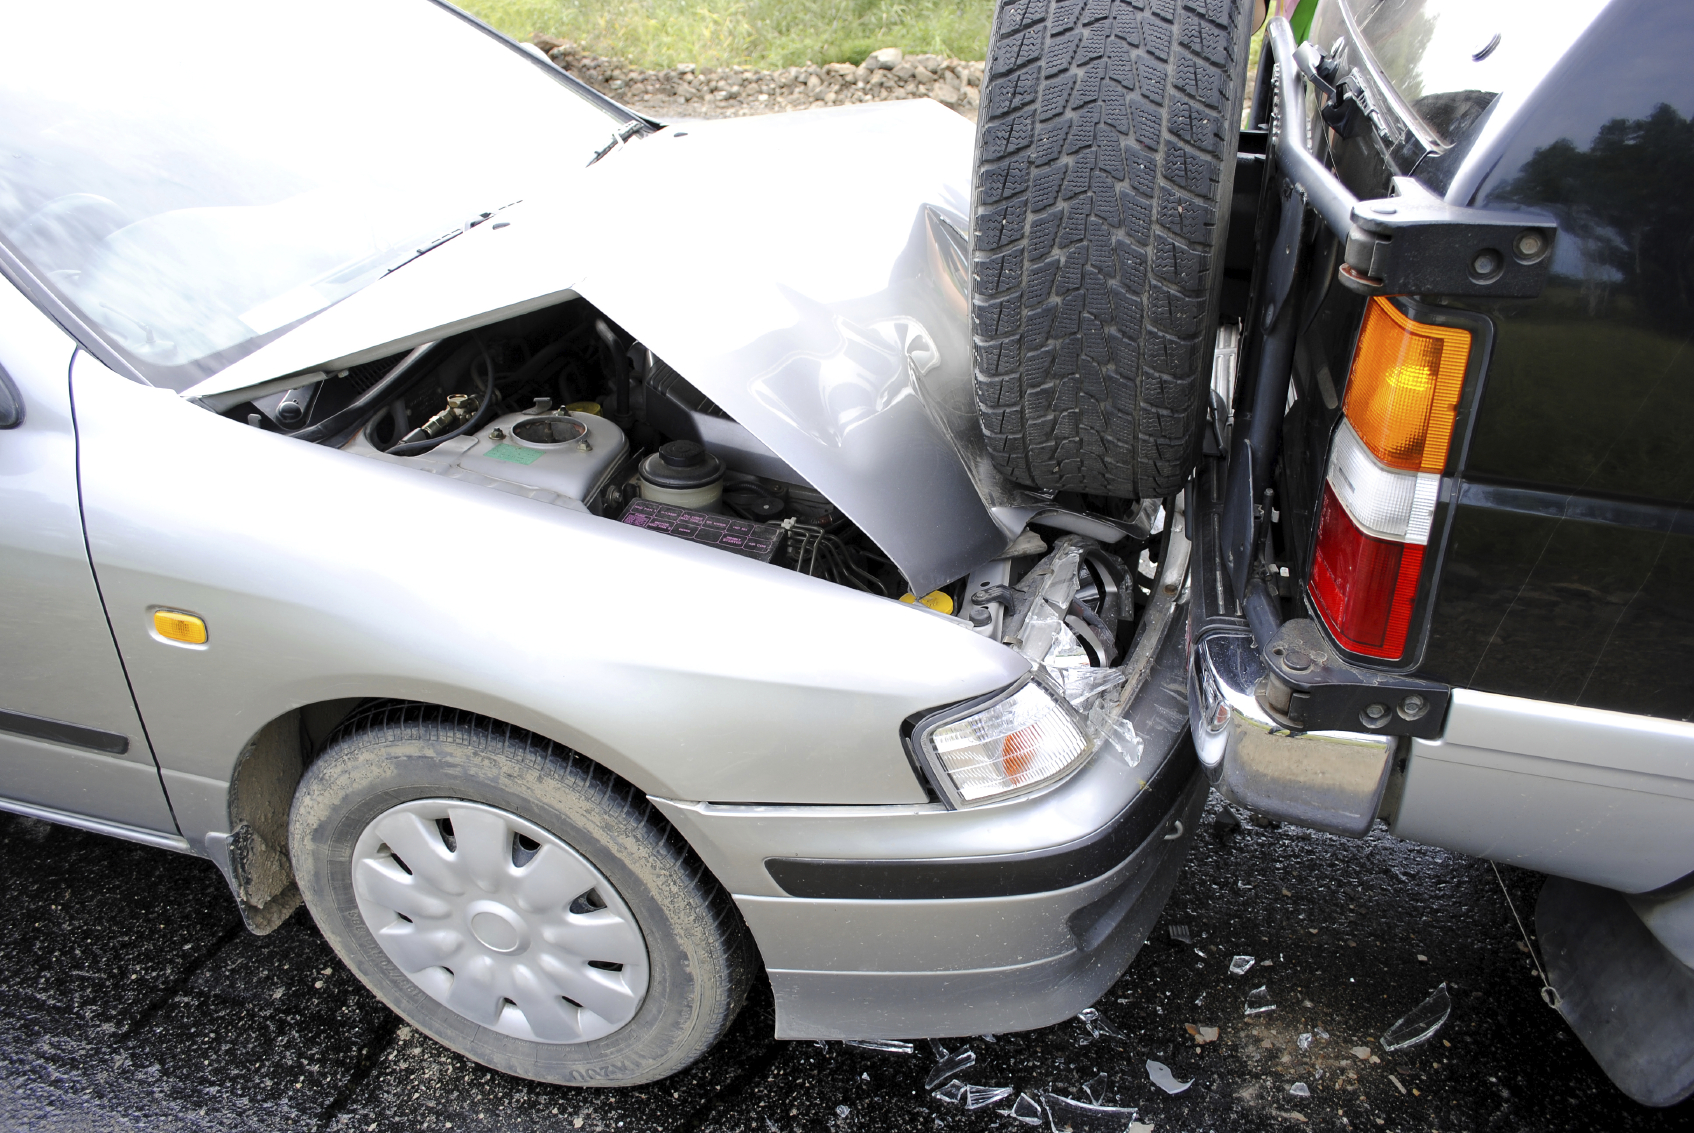 Where Do Most Car Accidents In Bangor Occur